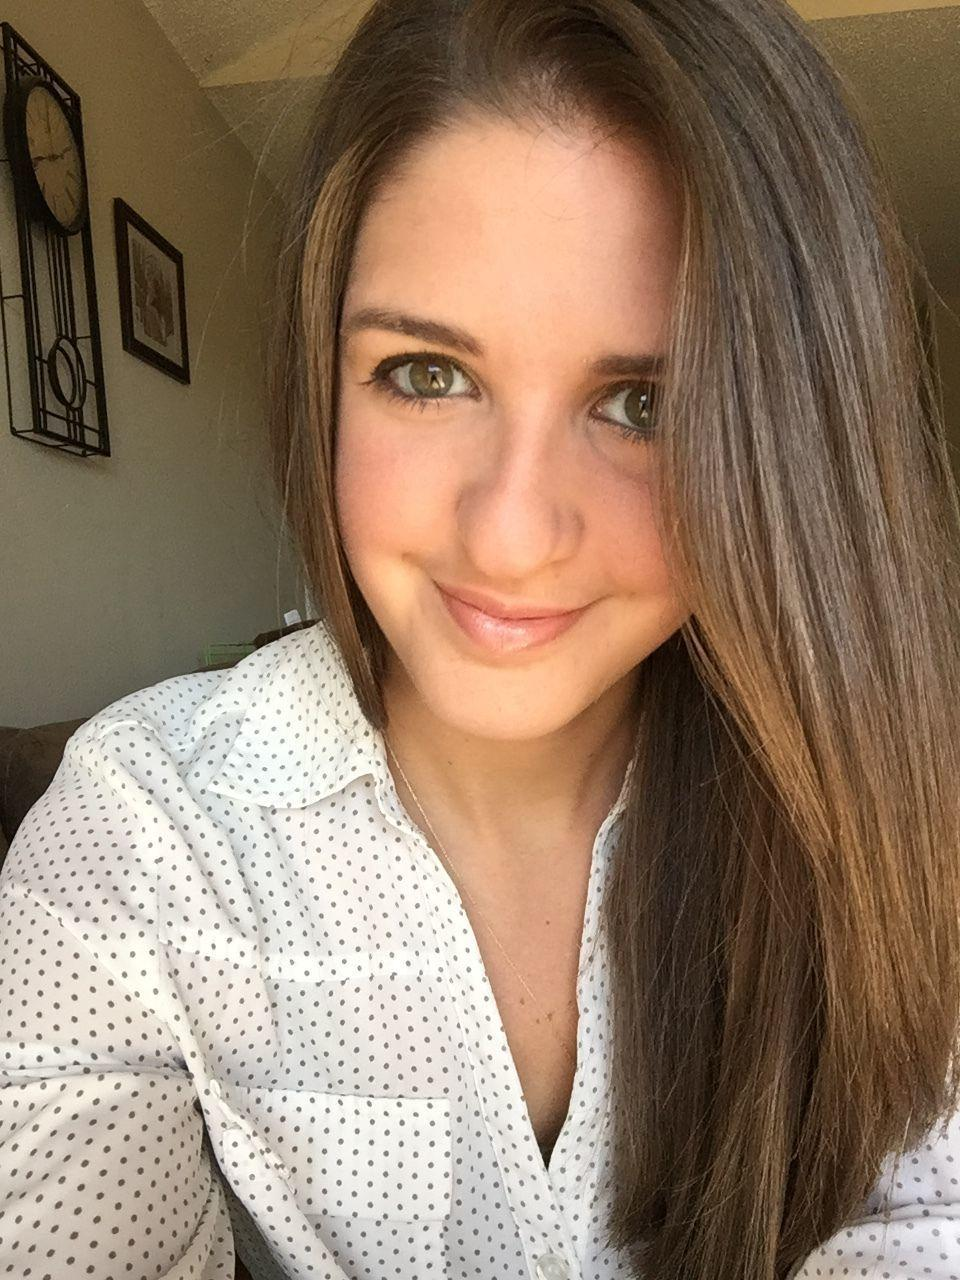 gibsonia latin singles Dating gibsonia girls & single gibsonia women & gibsonia single babes matchmakercom is your source to meeting attractive gibsonia women  latin dating whether.